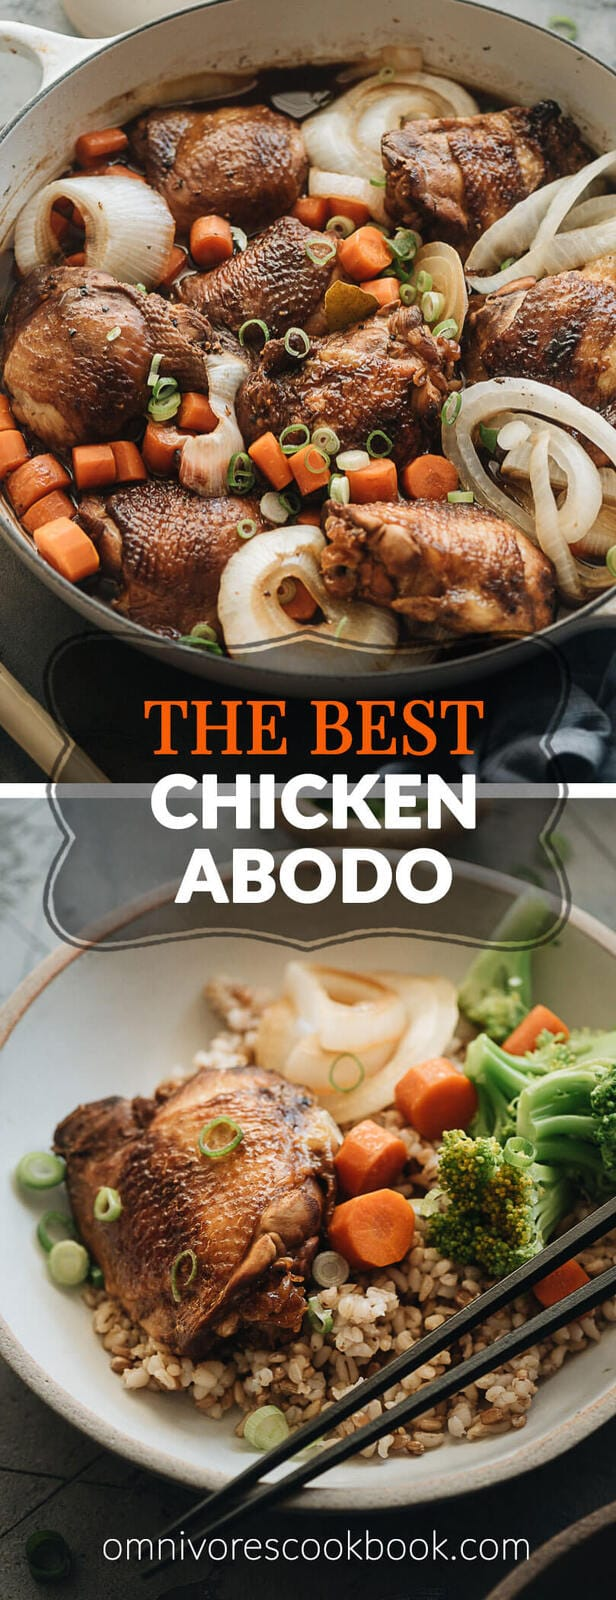 The Best Filipino Chicken Adobo - This savory yet tangy chicken dish only requires a few ingredients and lets the marinade do all the work for a flavorful and easy weekday dinner you can make in your own kitchen. {Gluten-Free} #easy #recipe #stovetop #authentic #thighs #vegetables